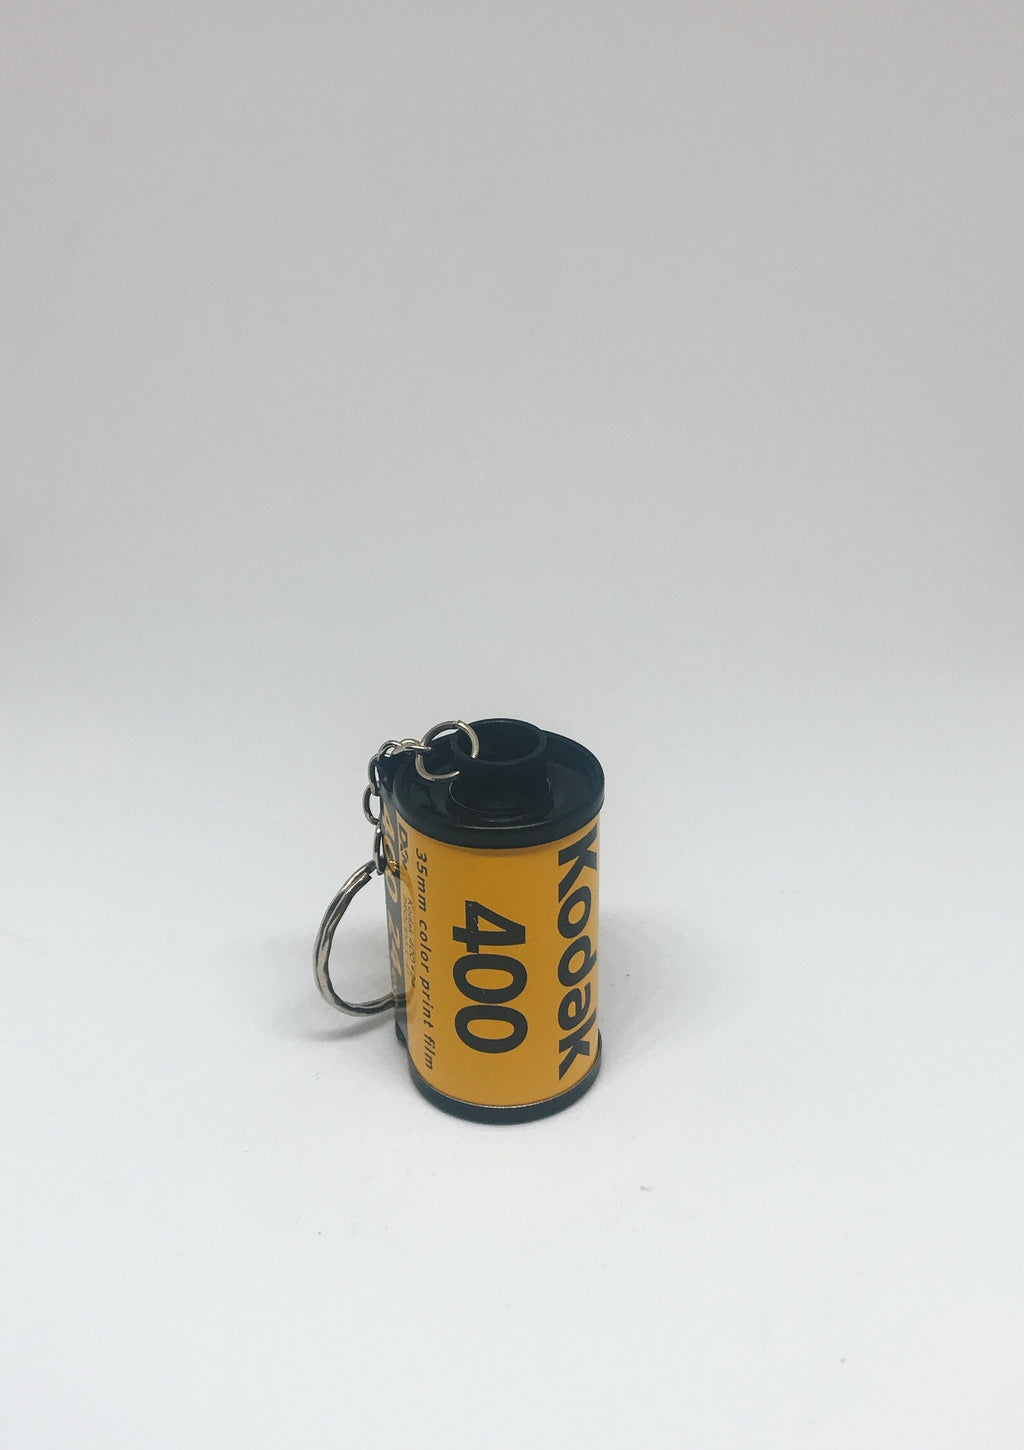 35mm film key chain